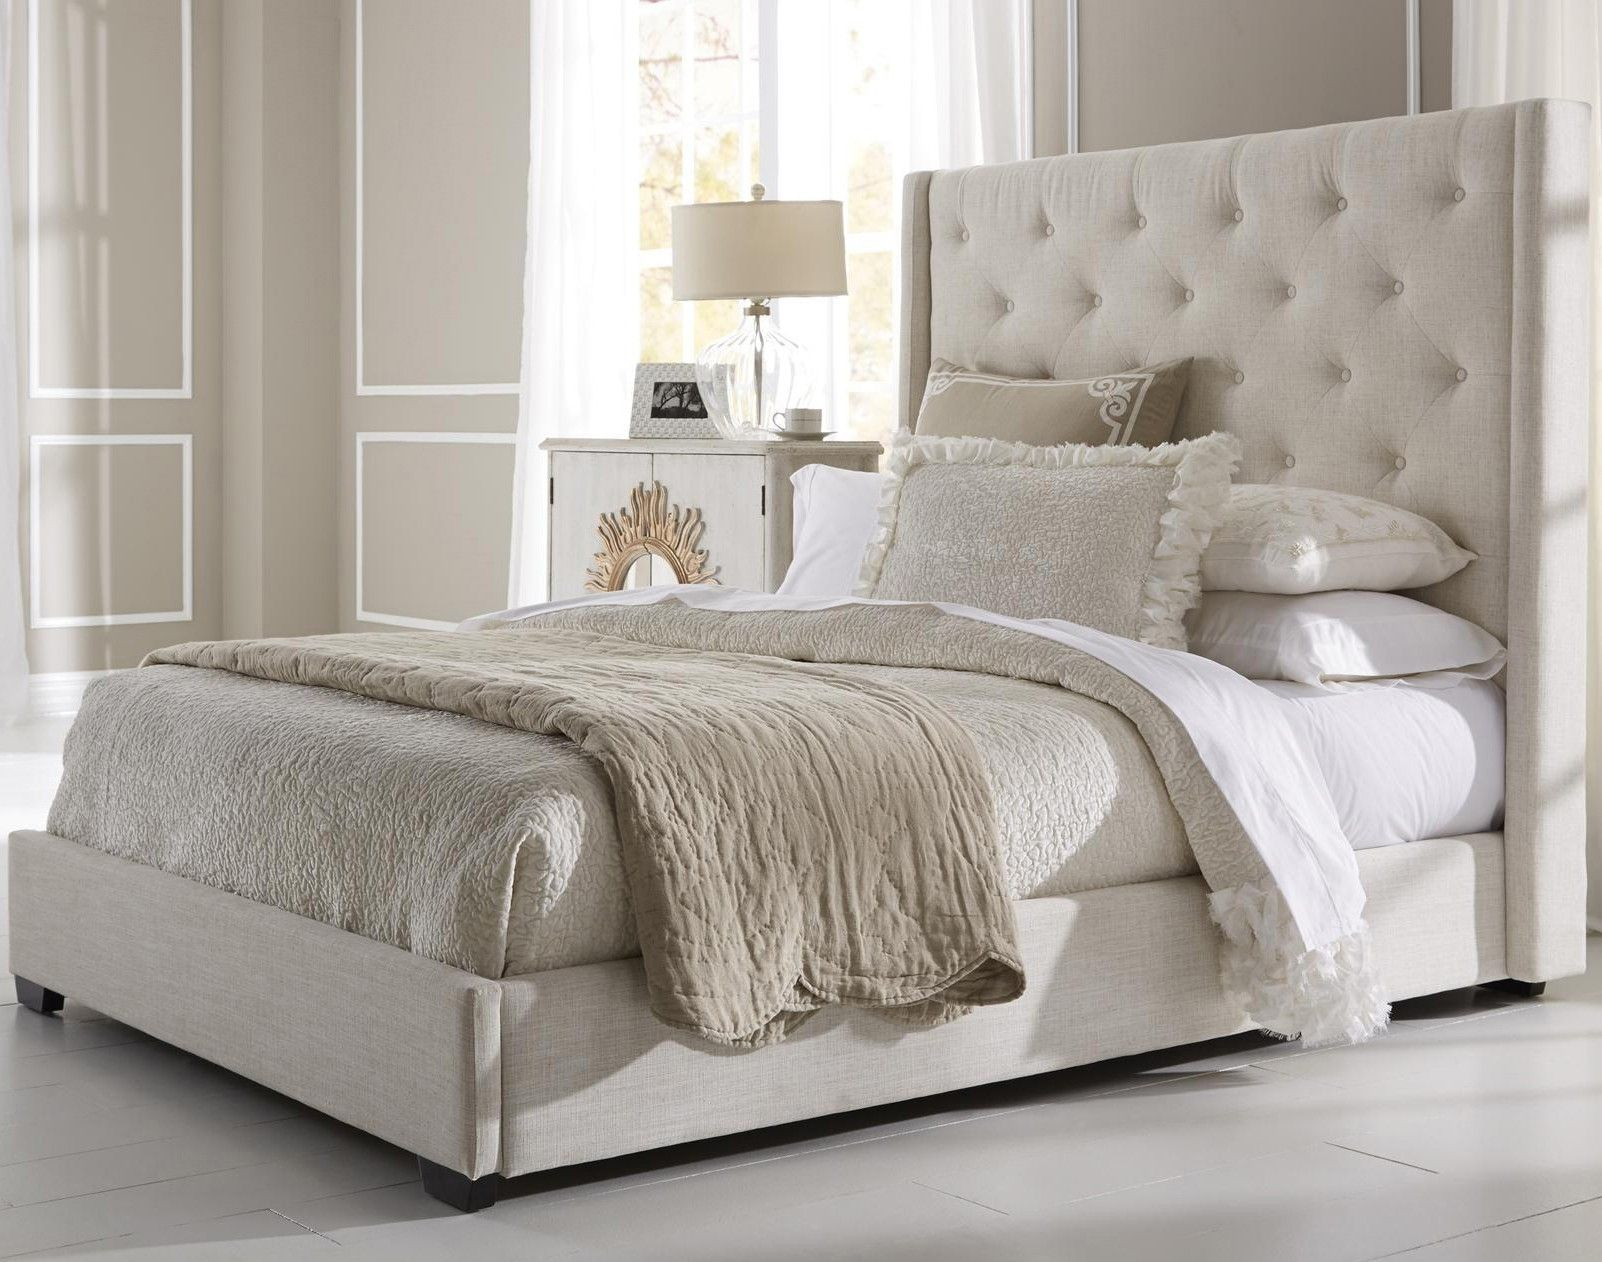 White Tufted Headboard Bedroom Furniture | Bedroom project 2017 ...